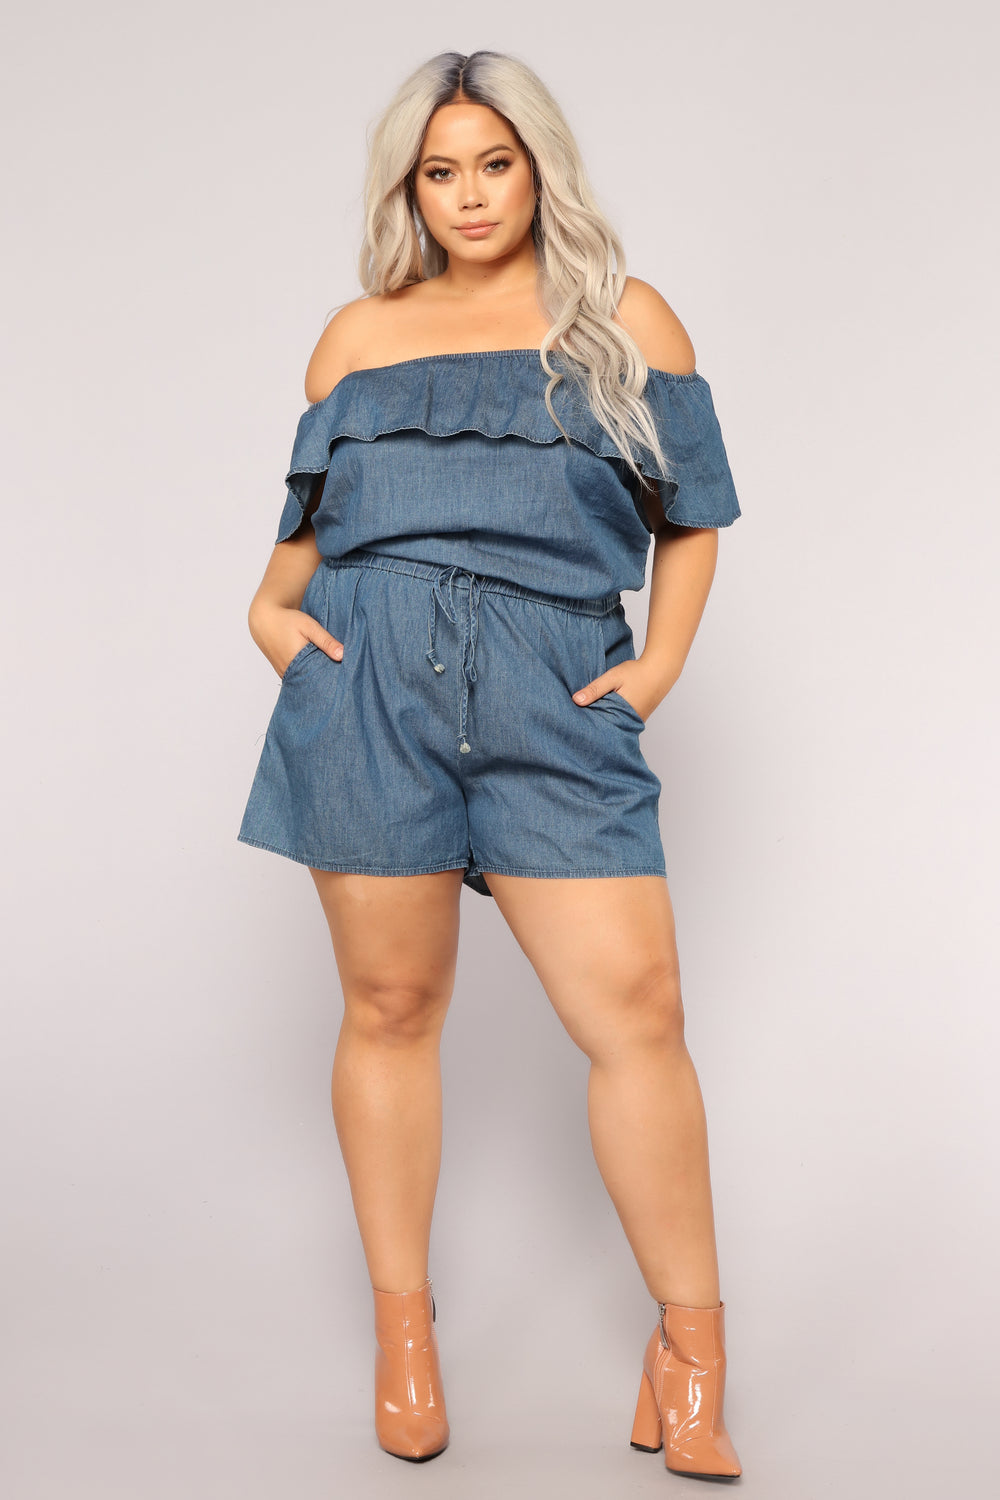 Good Day Off Shoulder Romper - Dark